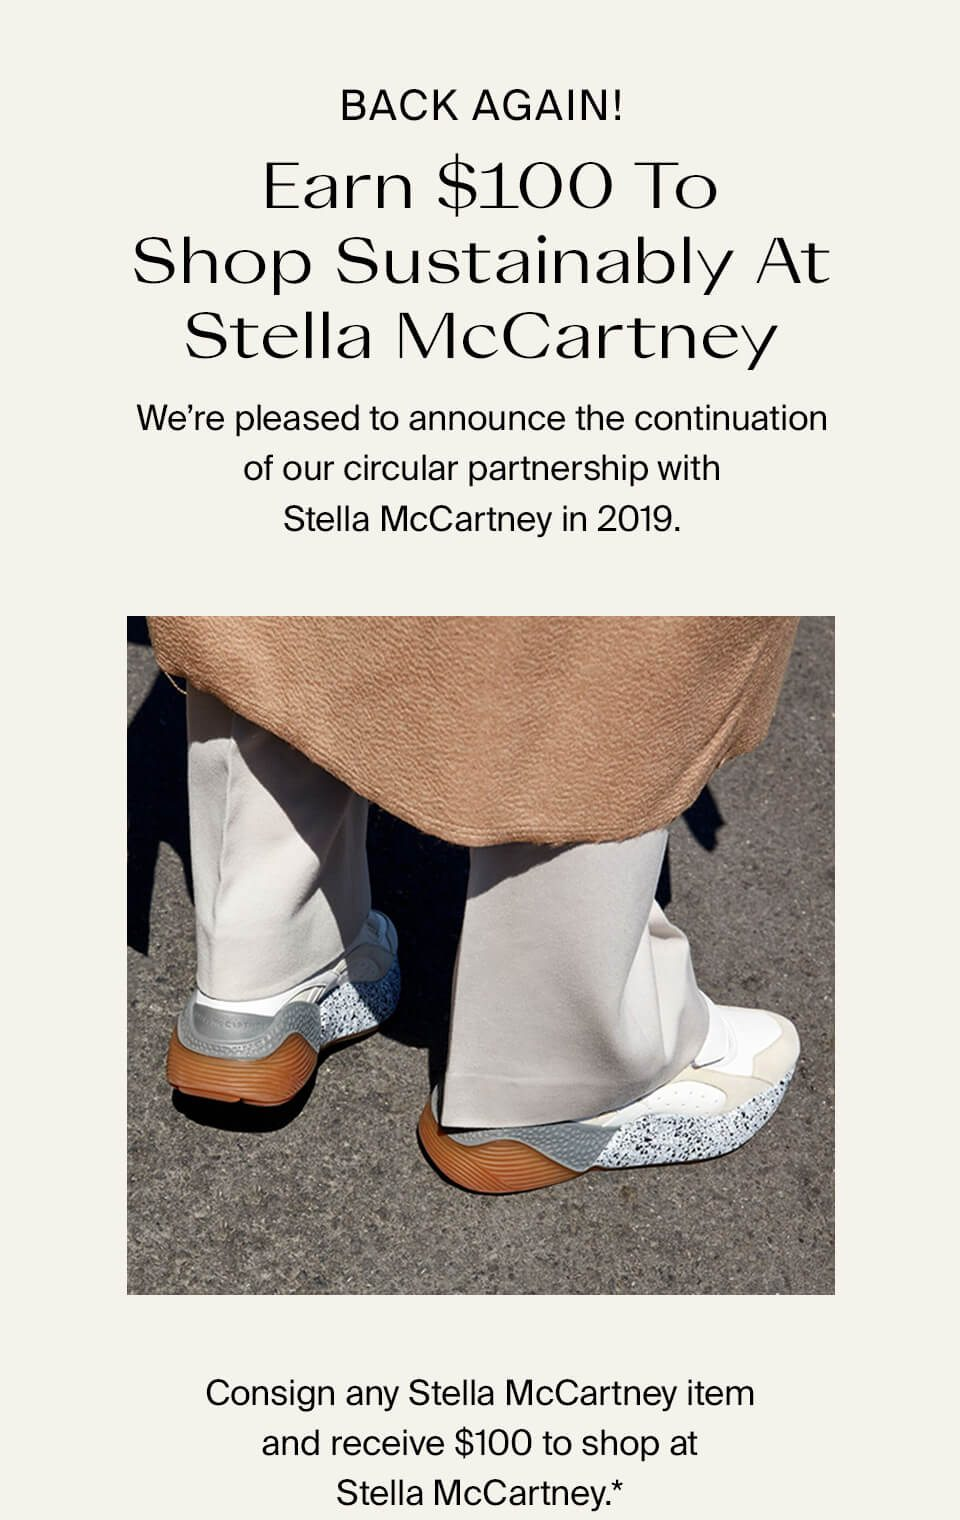 Back Again! Earn $100 To Shop Sustainably At Stella McCartney*